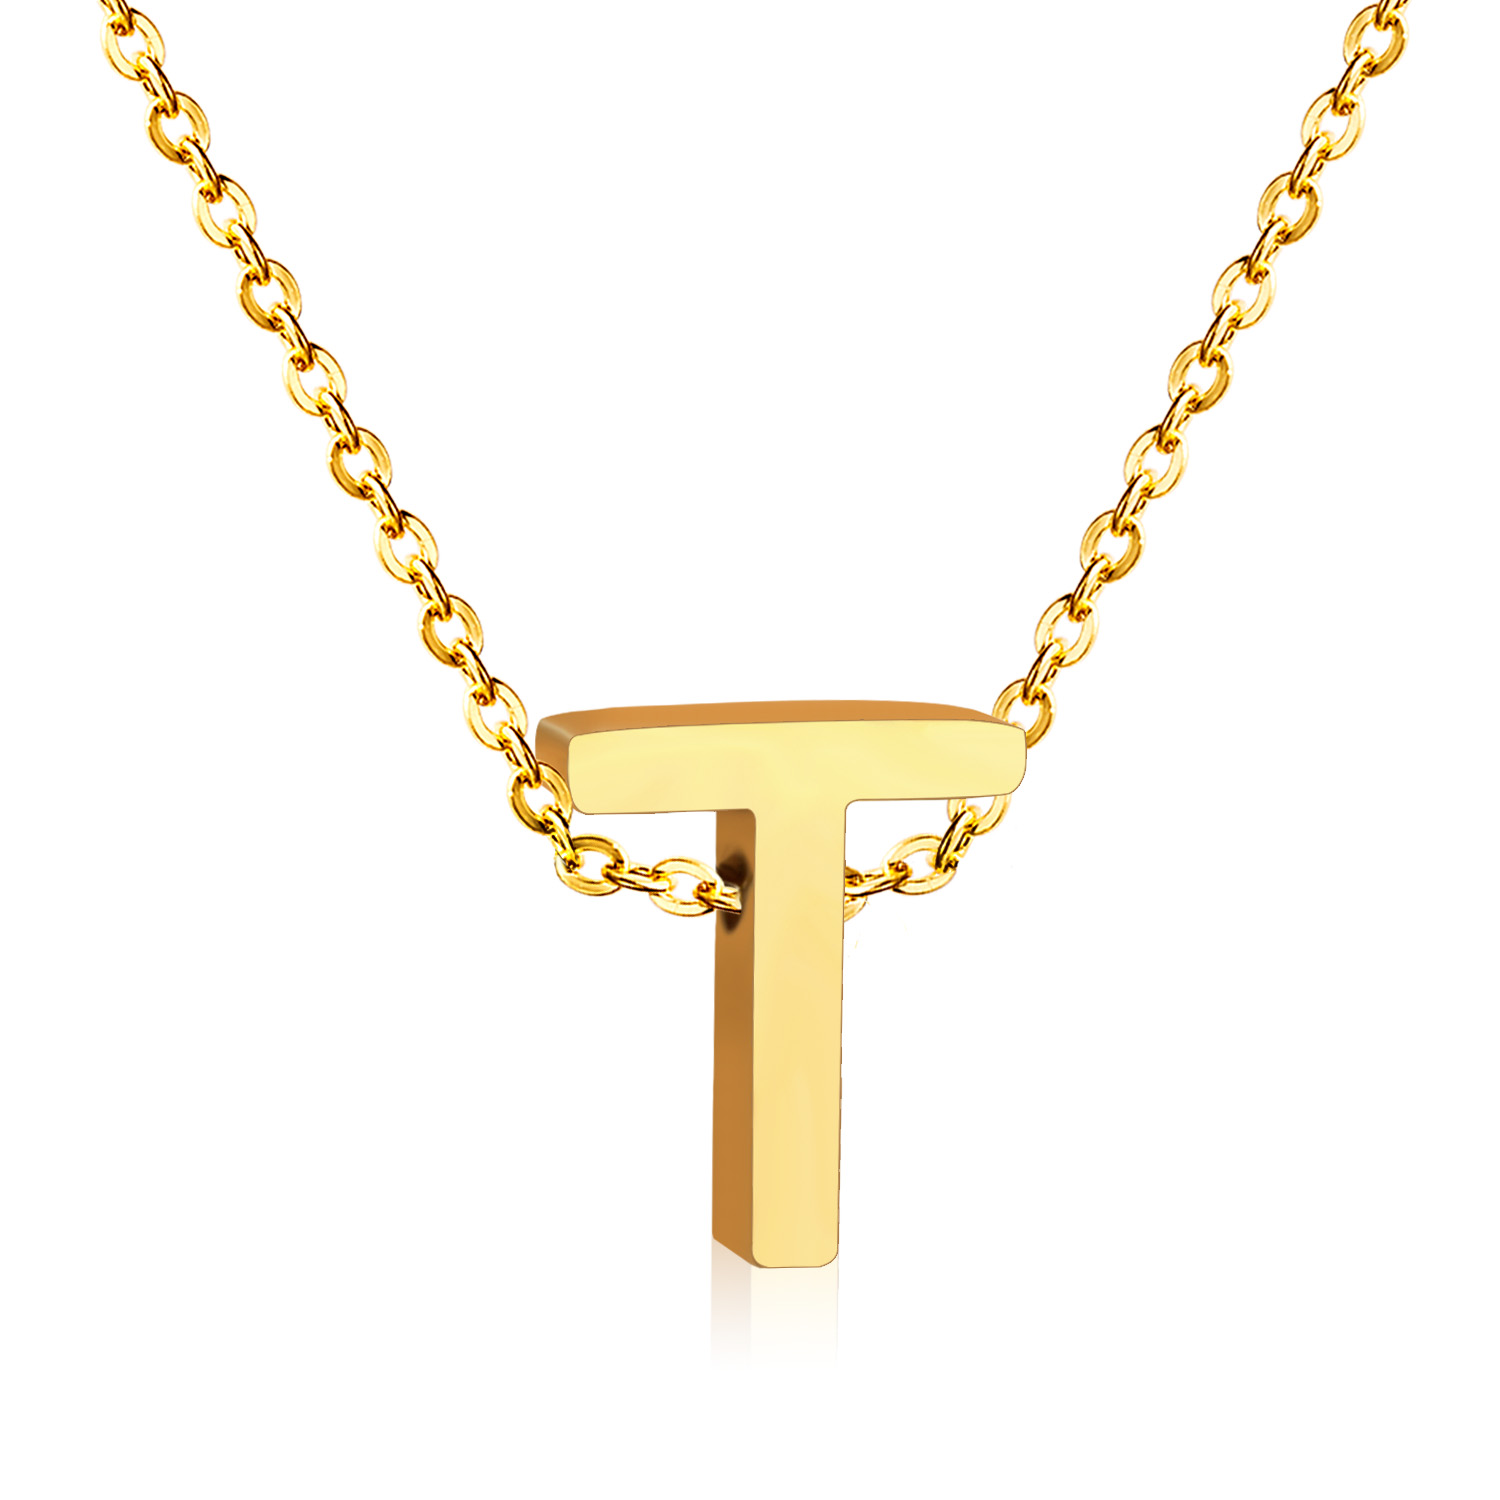 t spicyice letter pendant products necklace